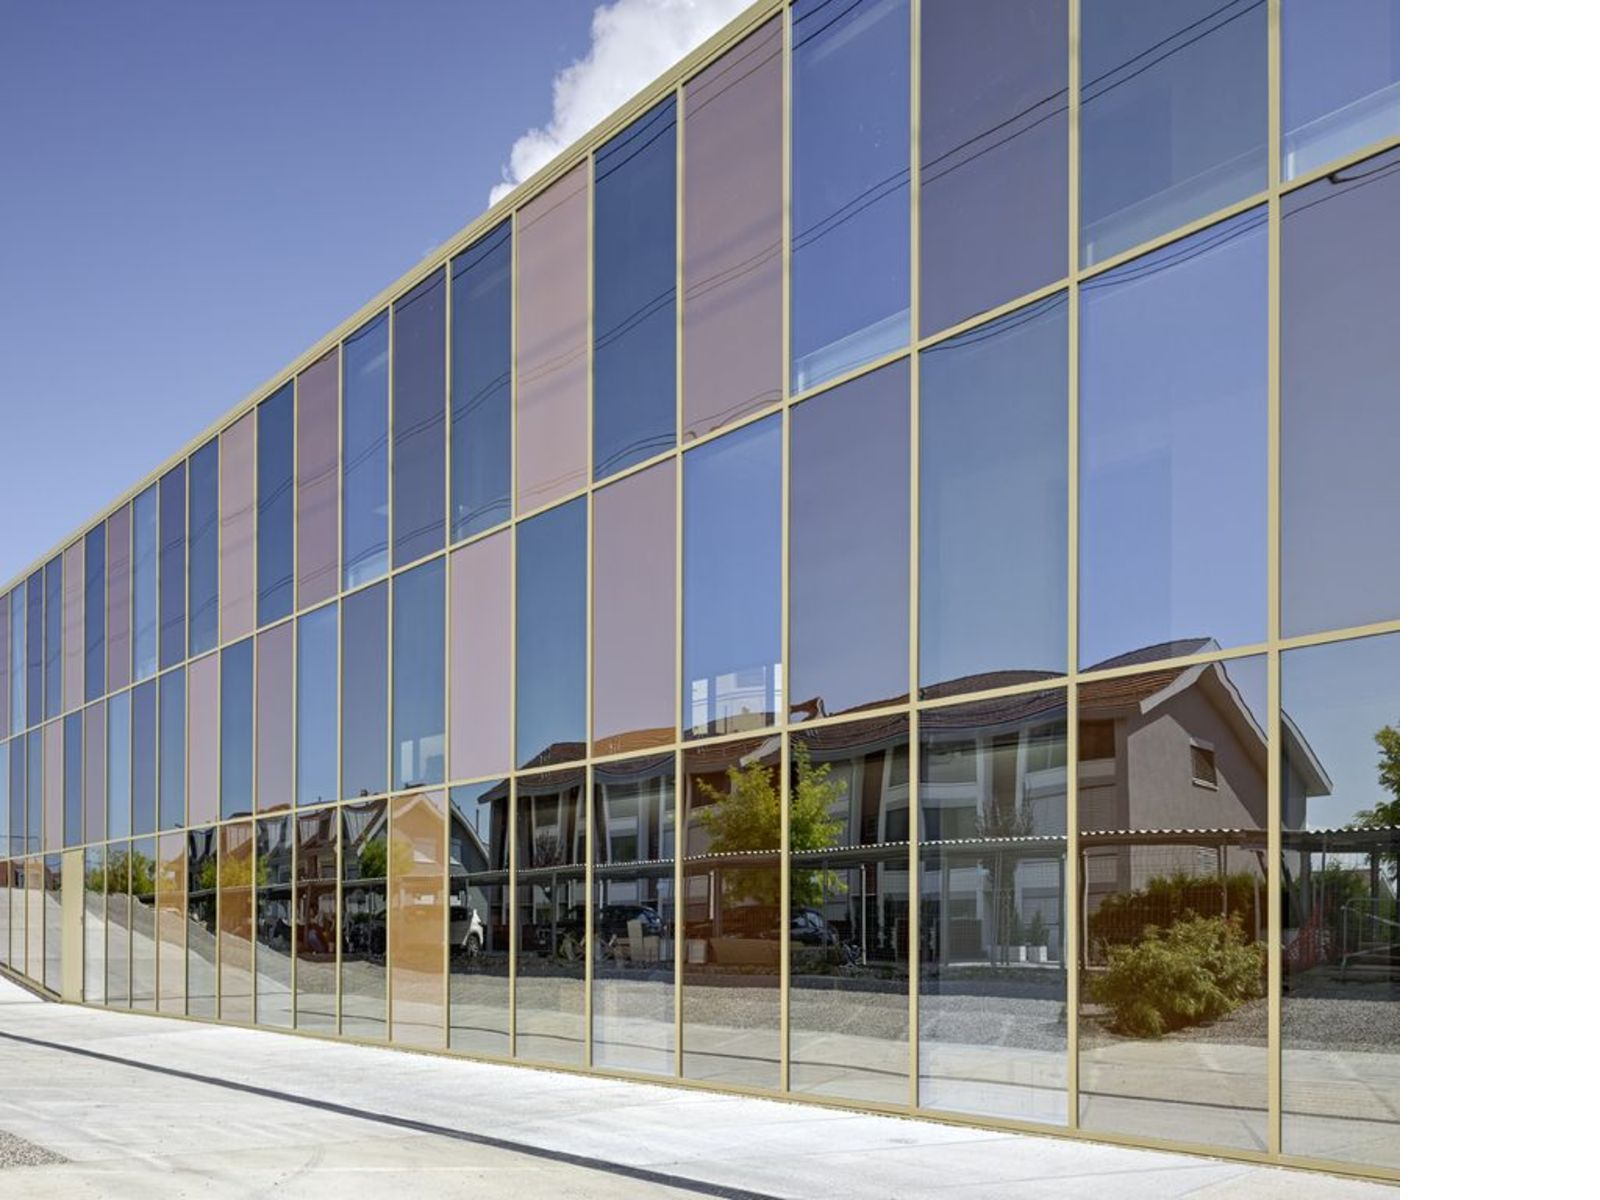 2b Architectes and the Jolimont Nord offices in Mont-sur-Rolle